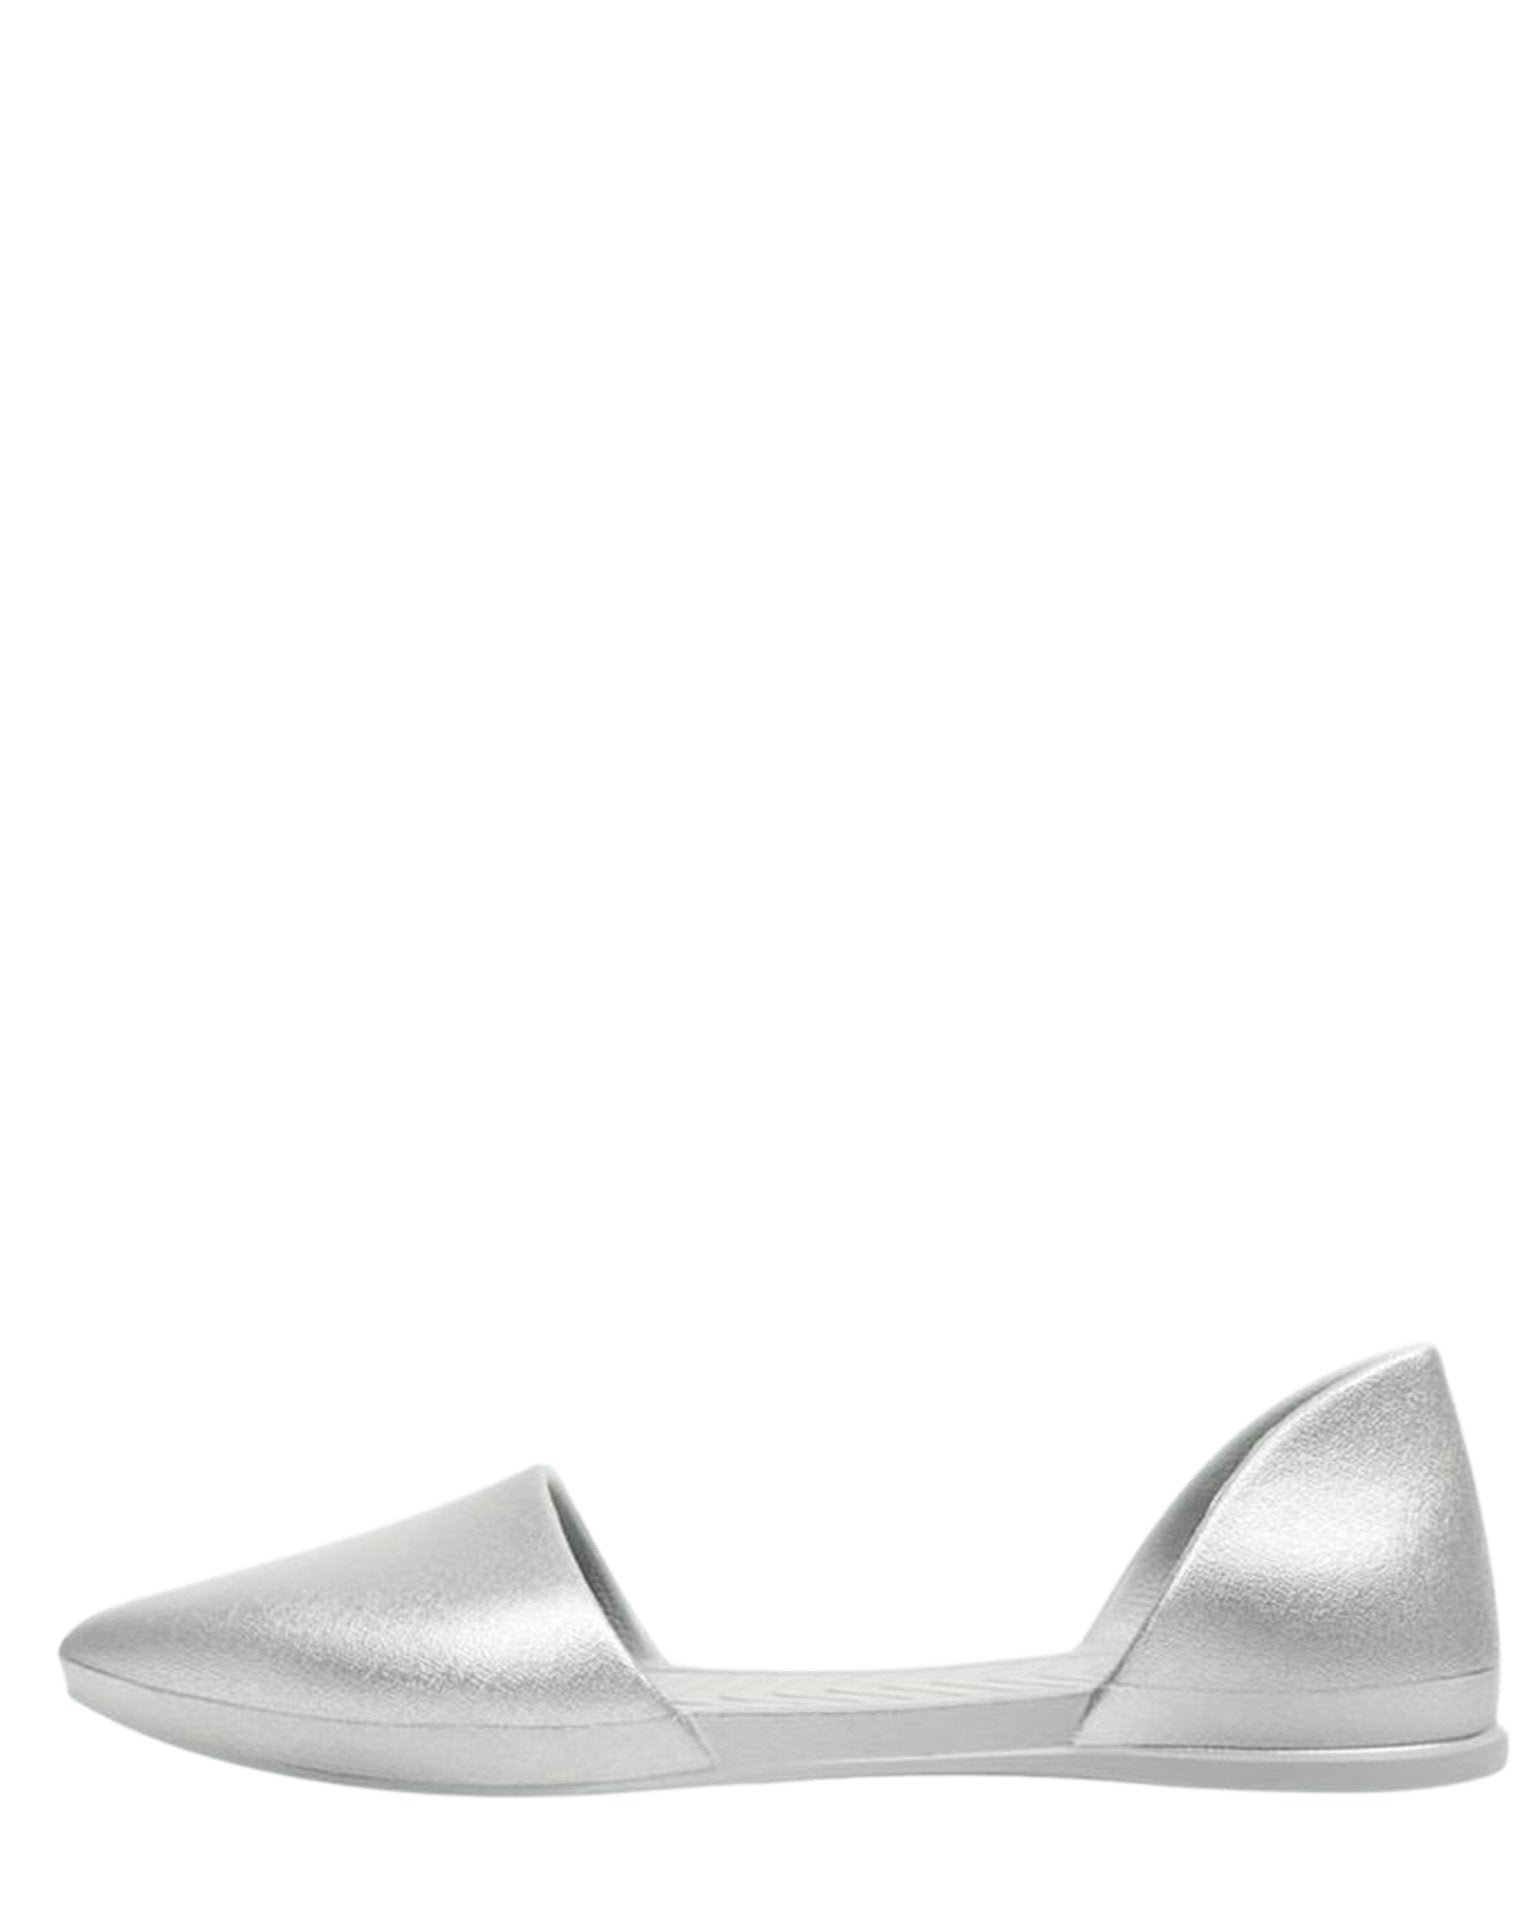 Native Shoes Silver / 6 Audrey - Metallic